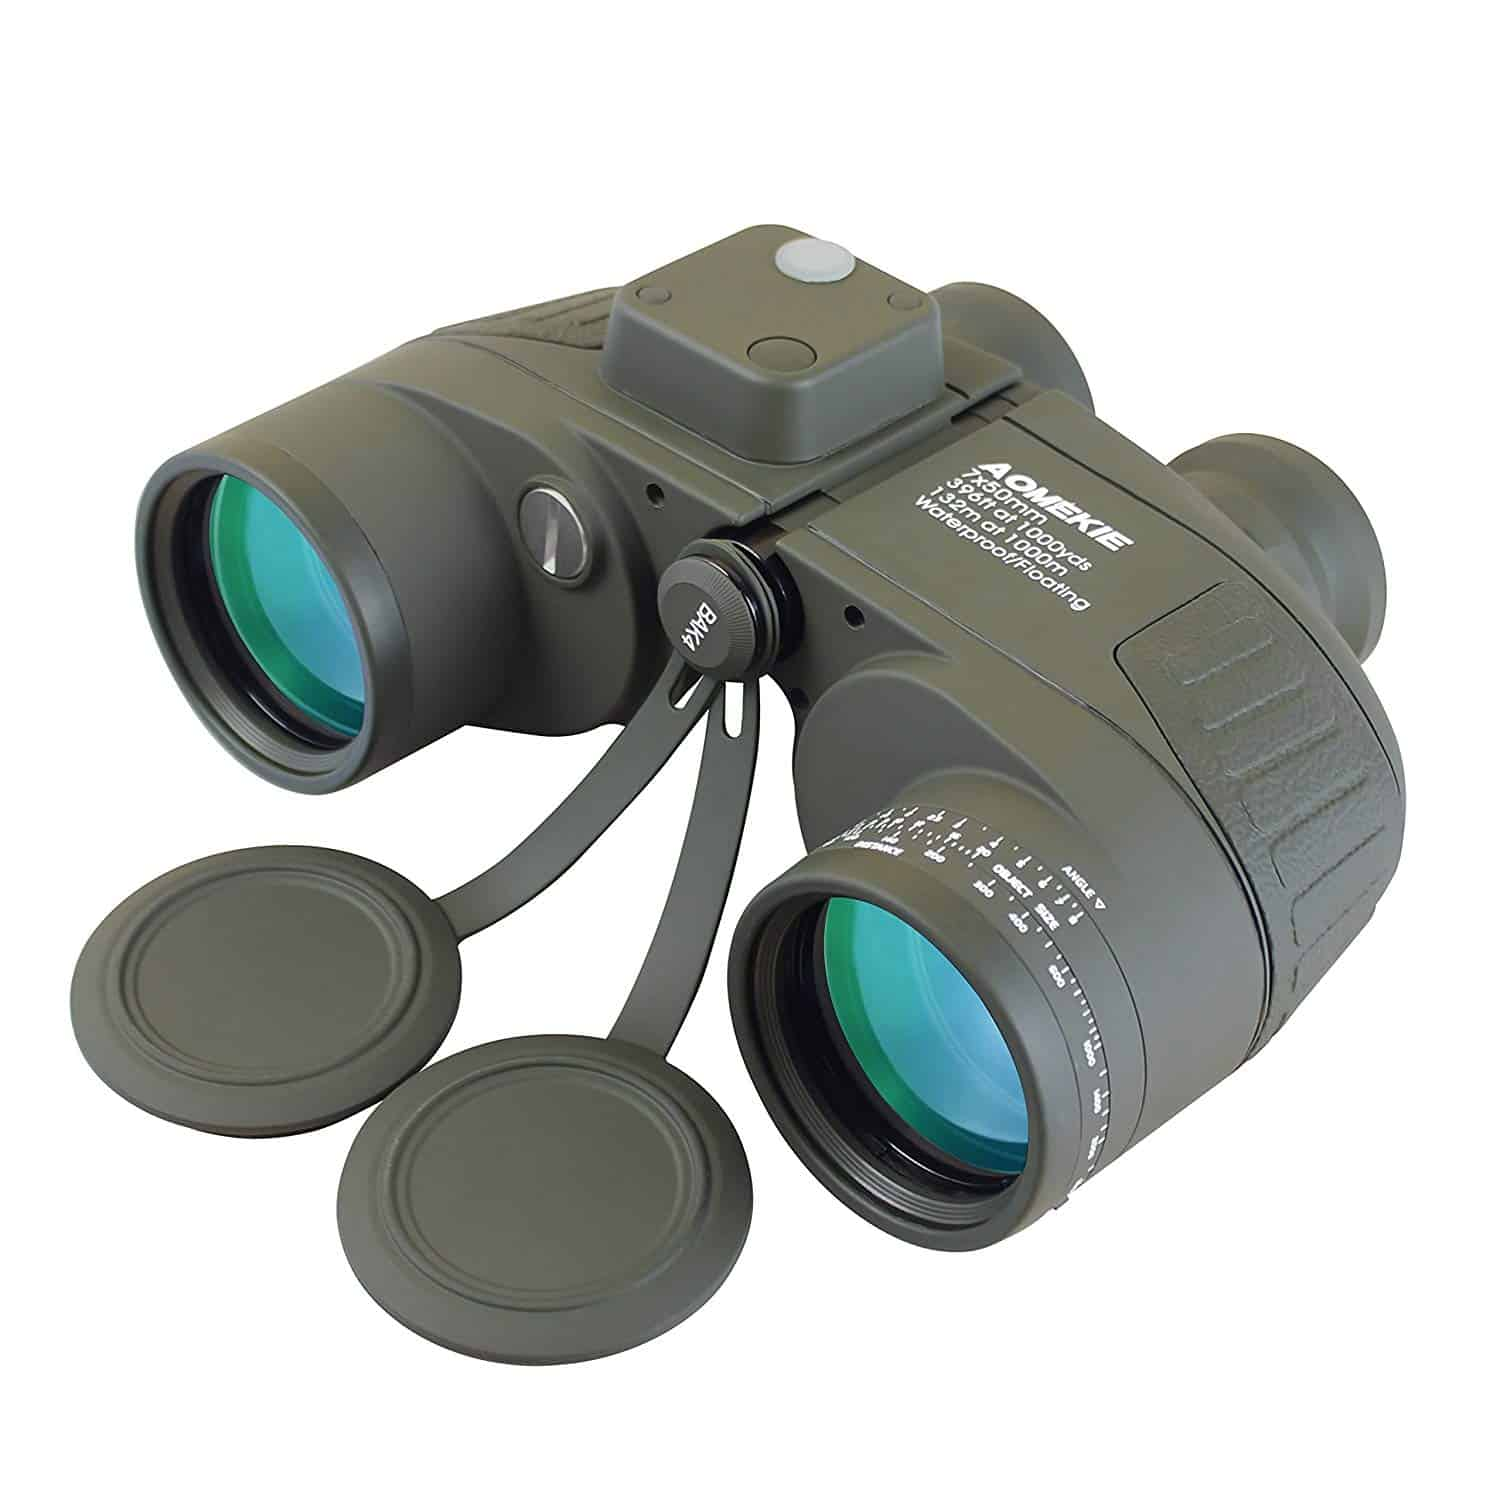 Aomekie Ultimate 7X50 HD Military Marine Binoculars with Illuminated Rangefinder Compass